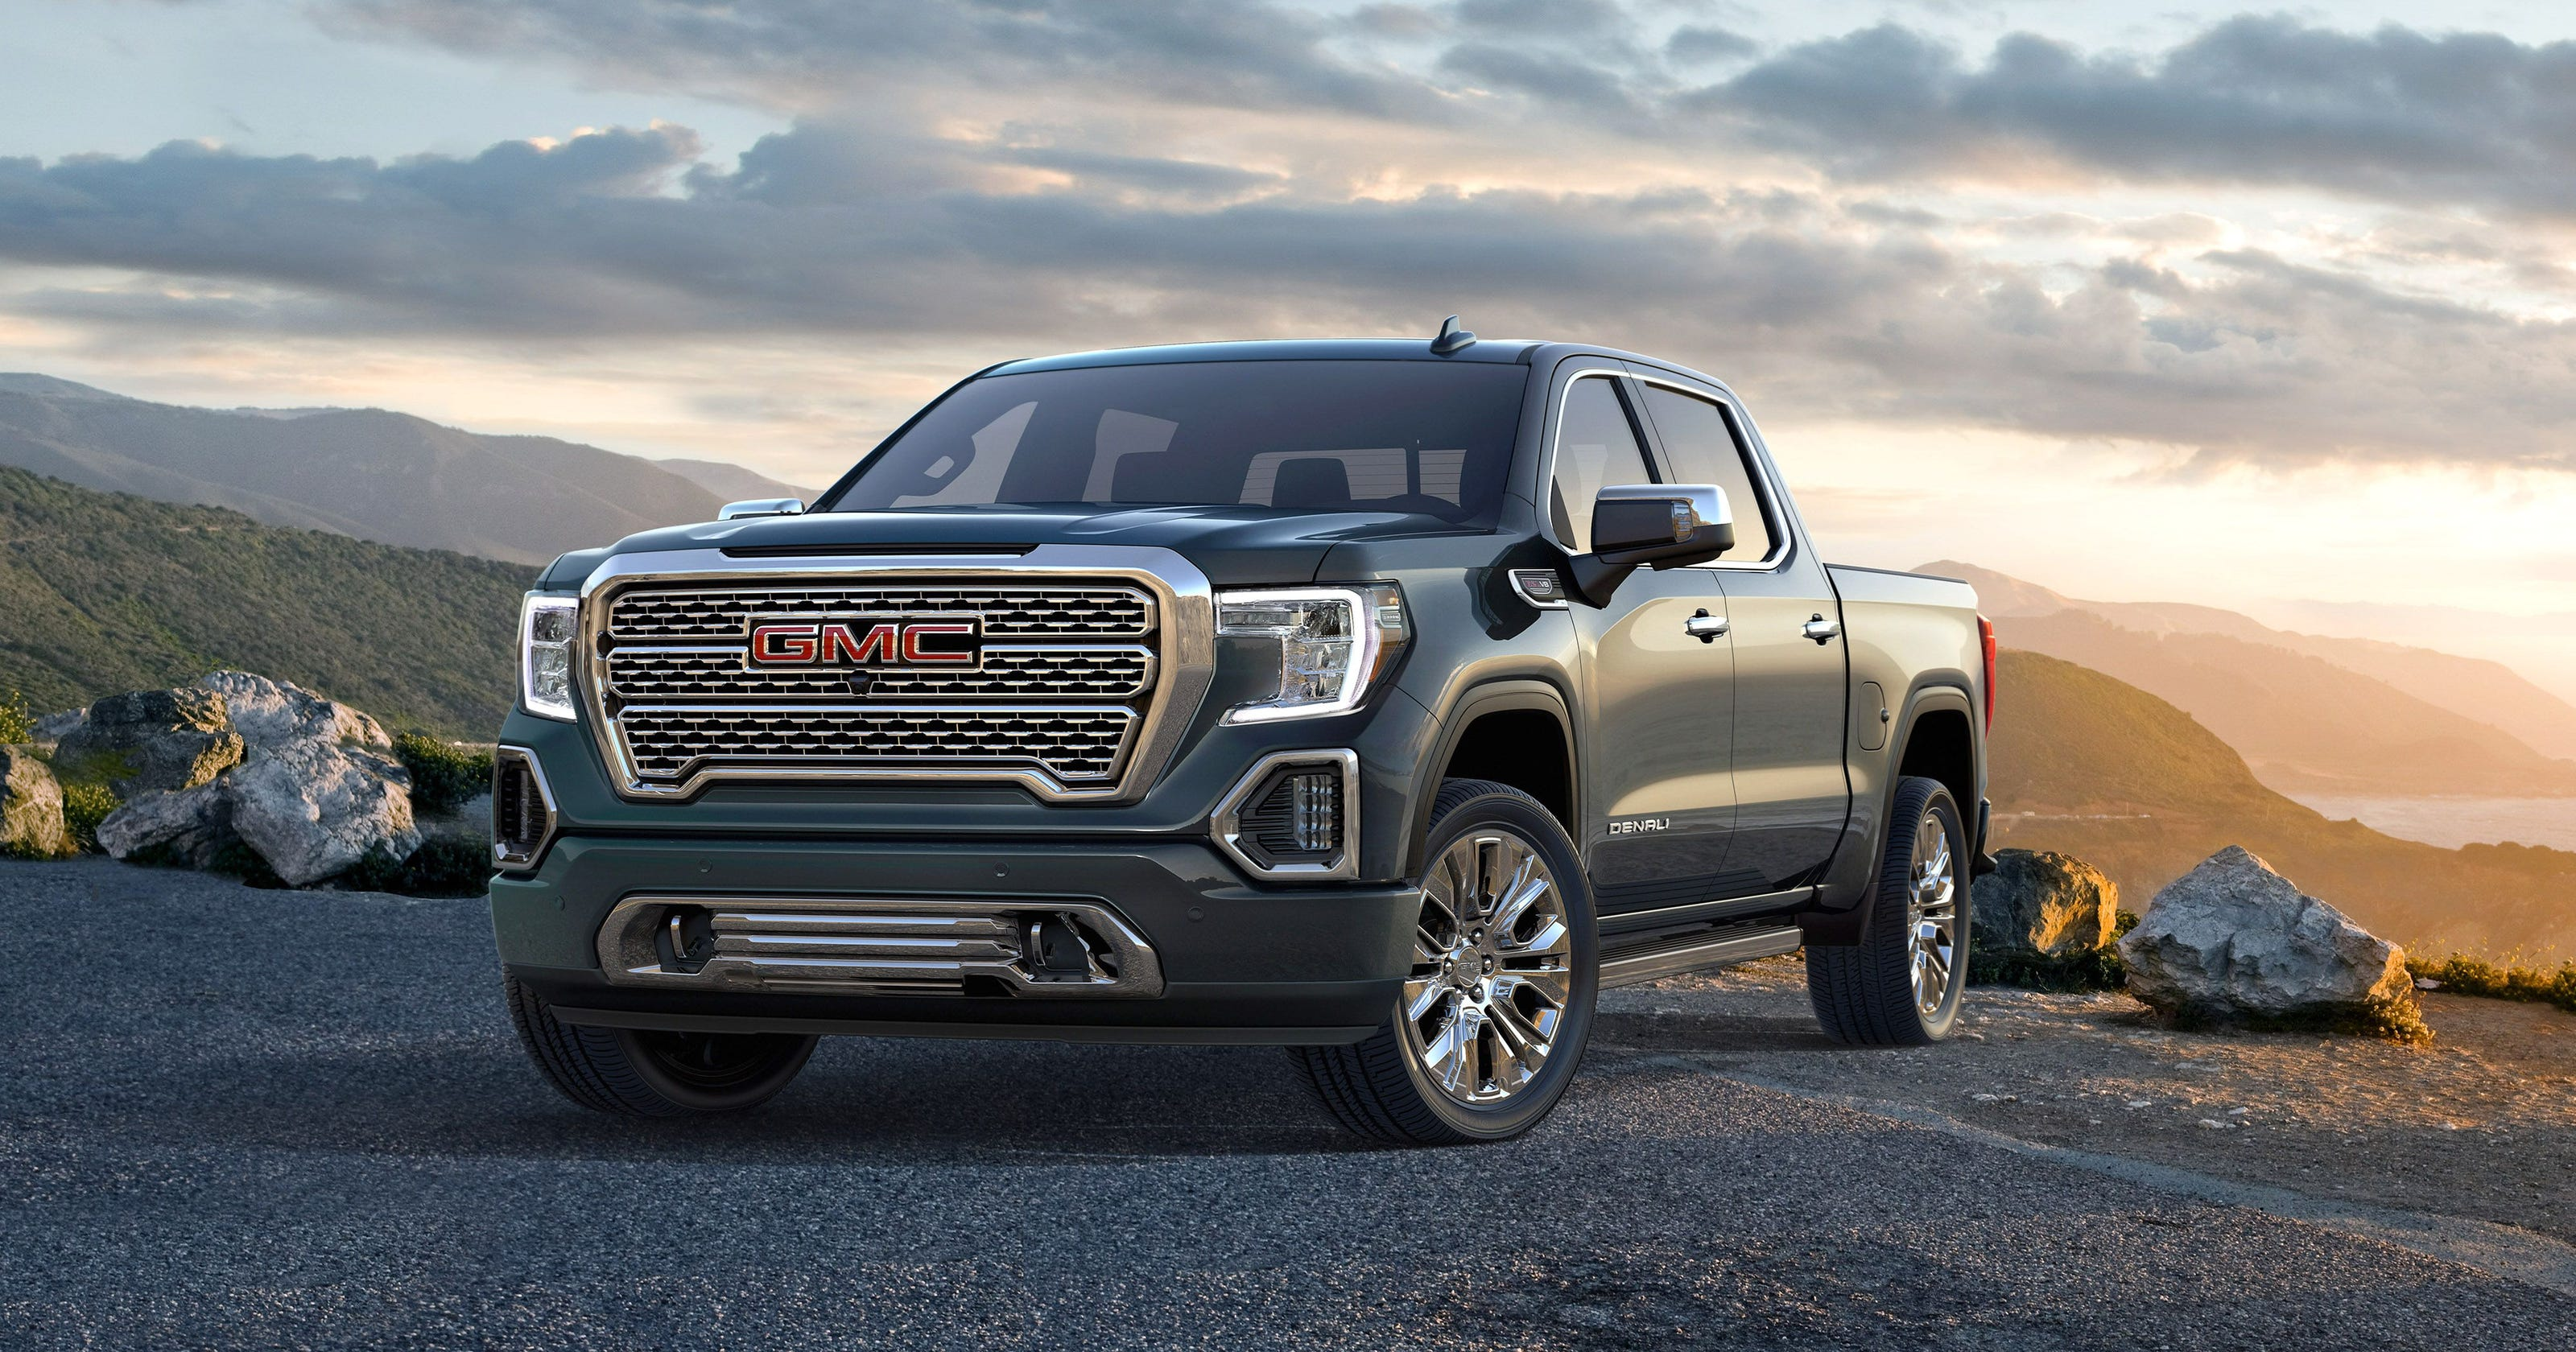 Gmc Sierra Pickup Truck Redesigned With Tricked Out Tailgate Carbon